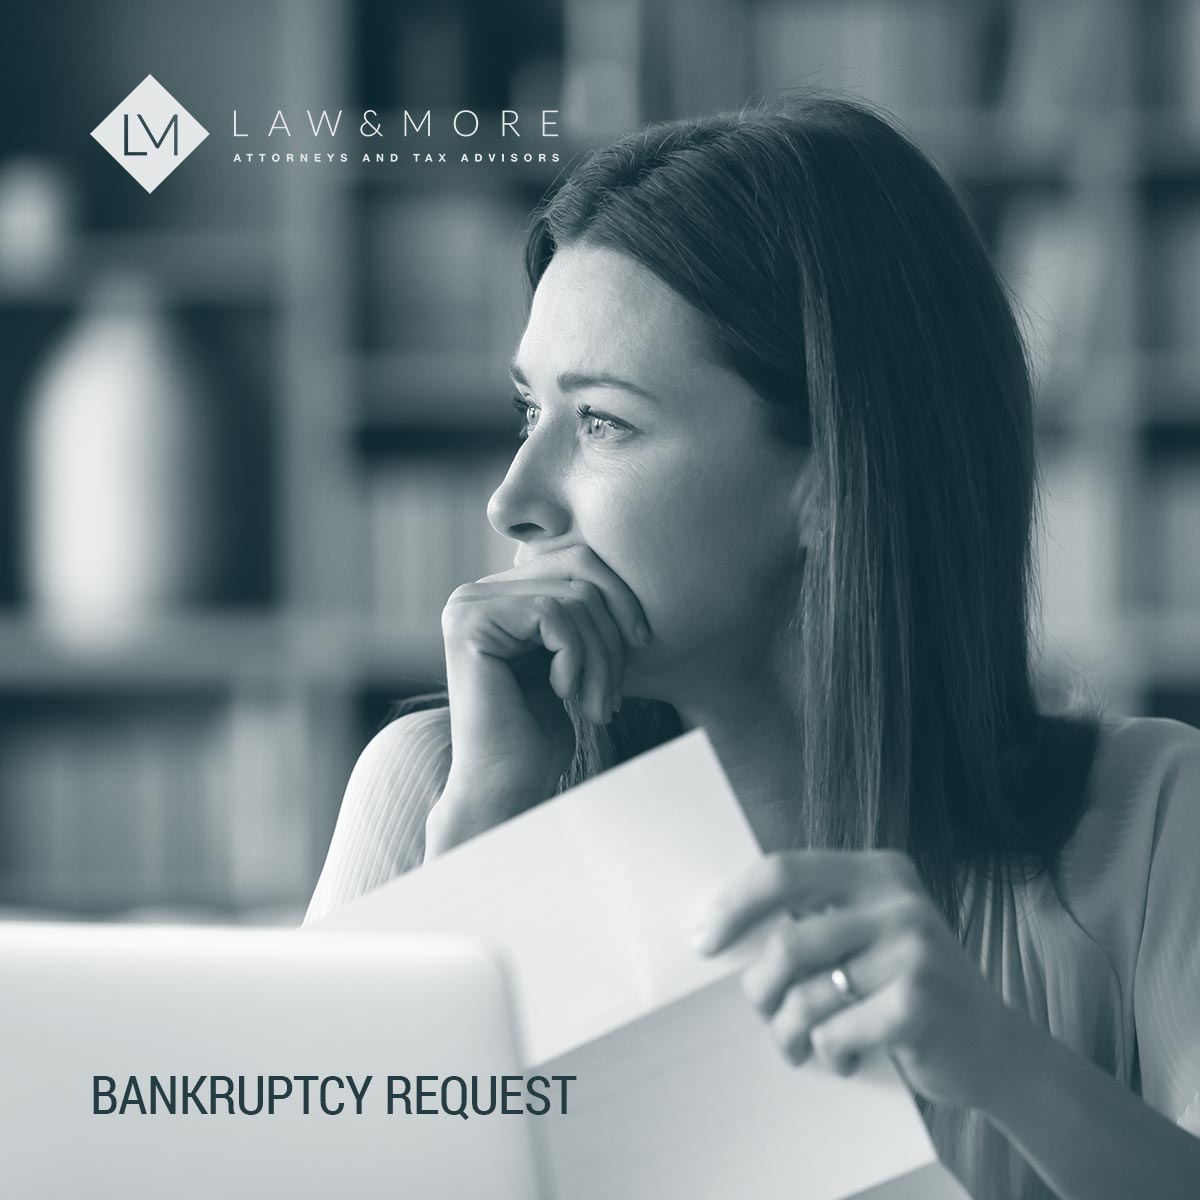 Bankruptcy request